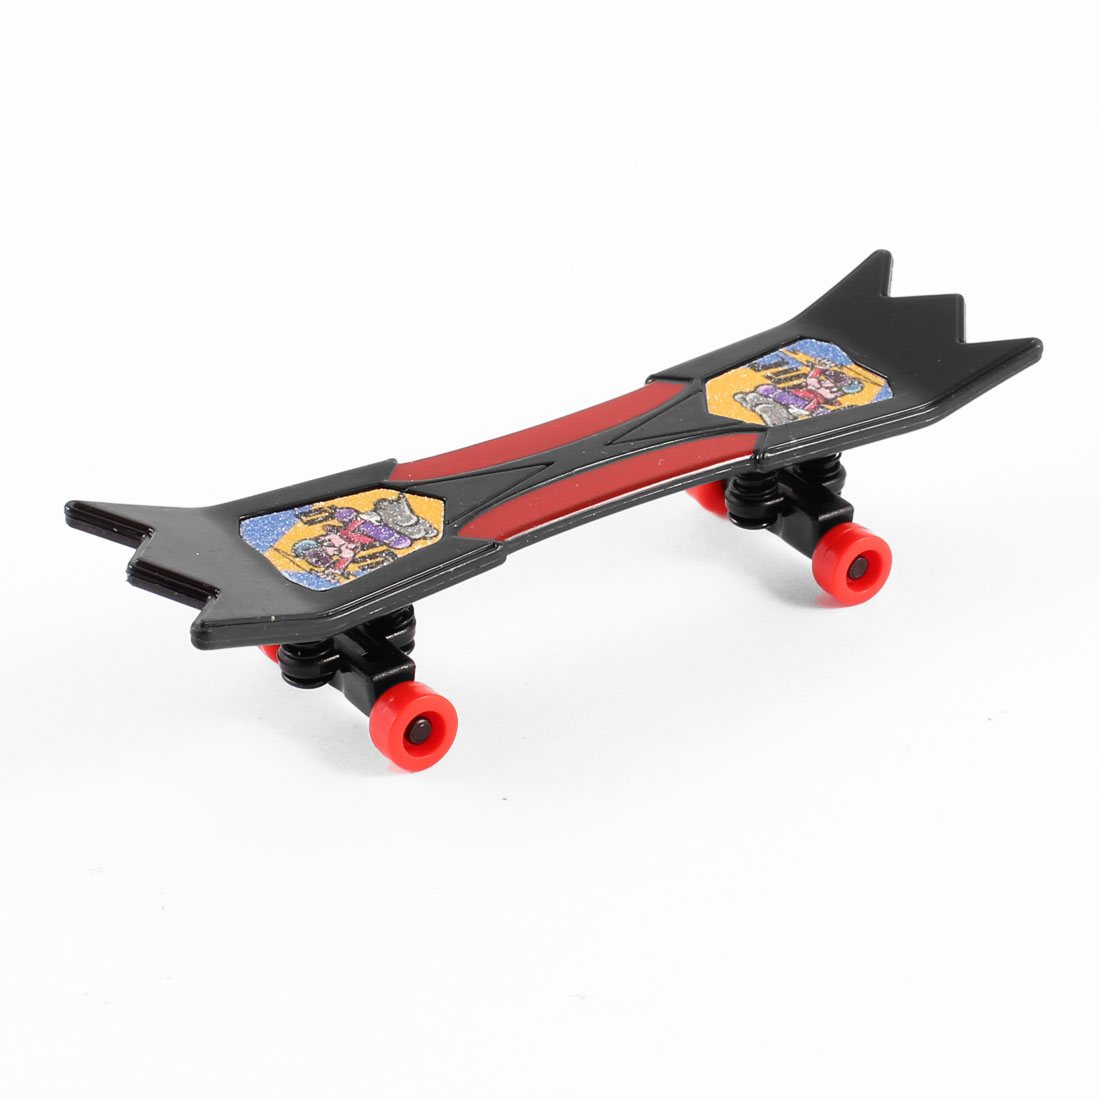 Cartoon character Printed Plastic Finger Skateboard Toy Black Carmine for Child